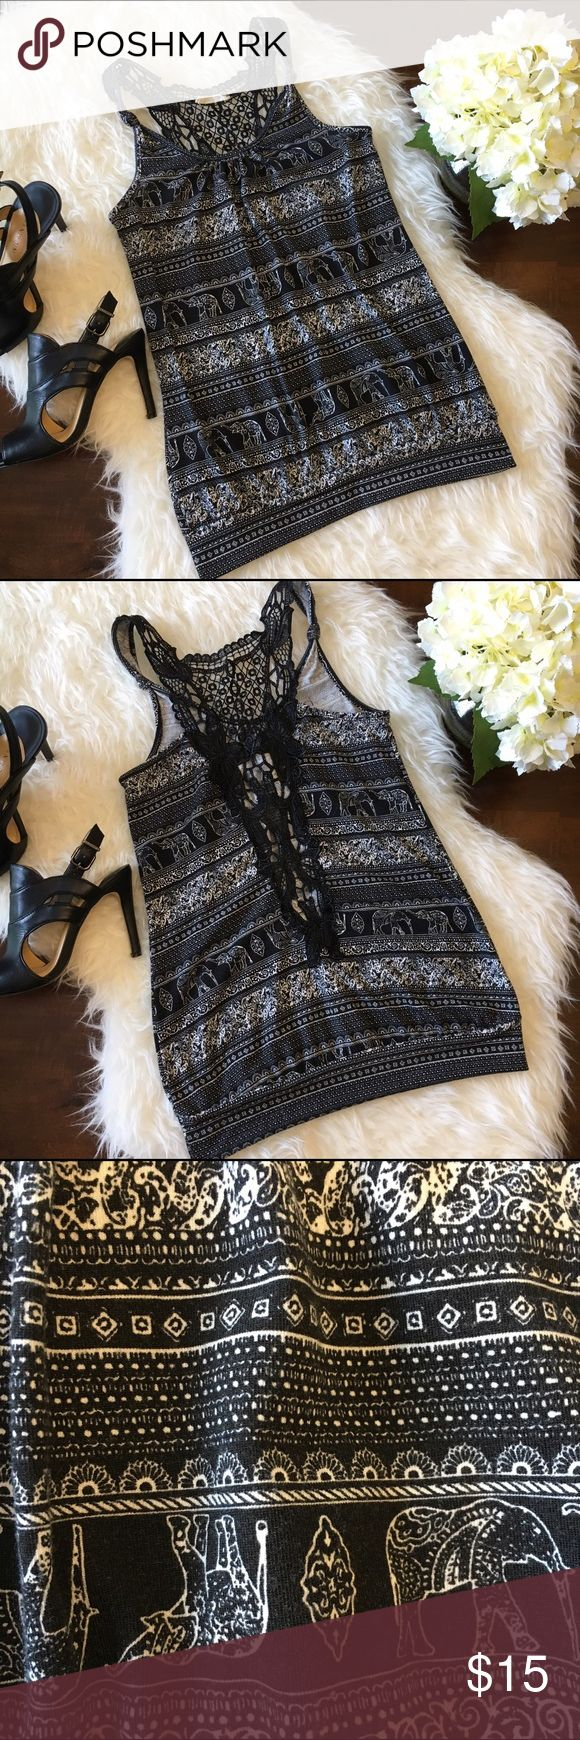 """Black & White Elephant Print Crochet Back Tank Top Great used condition. Super cute black and white elephant and paisley print racerback crochet back tank top. Cute knotted detail on shoulder straps. No size tag but fits like a small. Armpit to armpit: 16"""", shoulder to hem: 25"""". No tears, holes, or stains. Smoke free home. No trades please. Tops Tank Tops"""